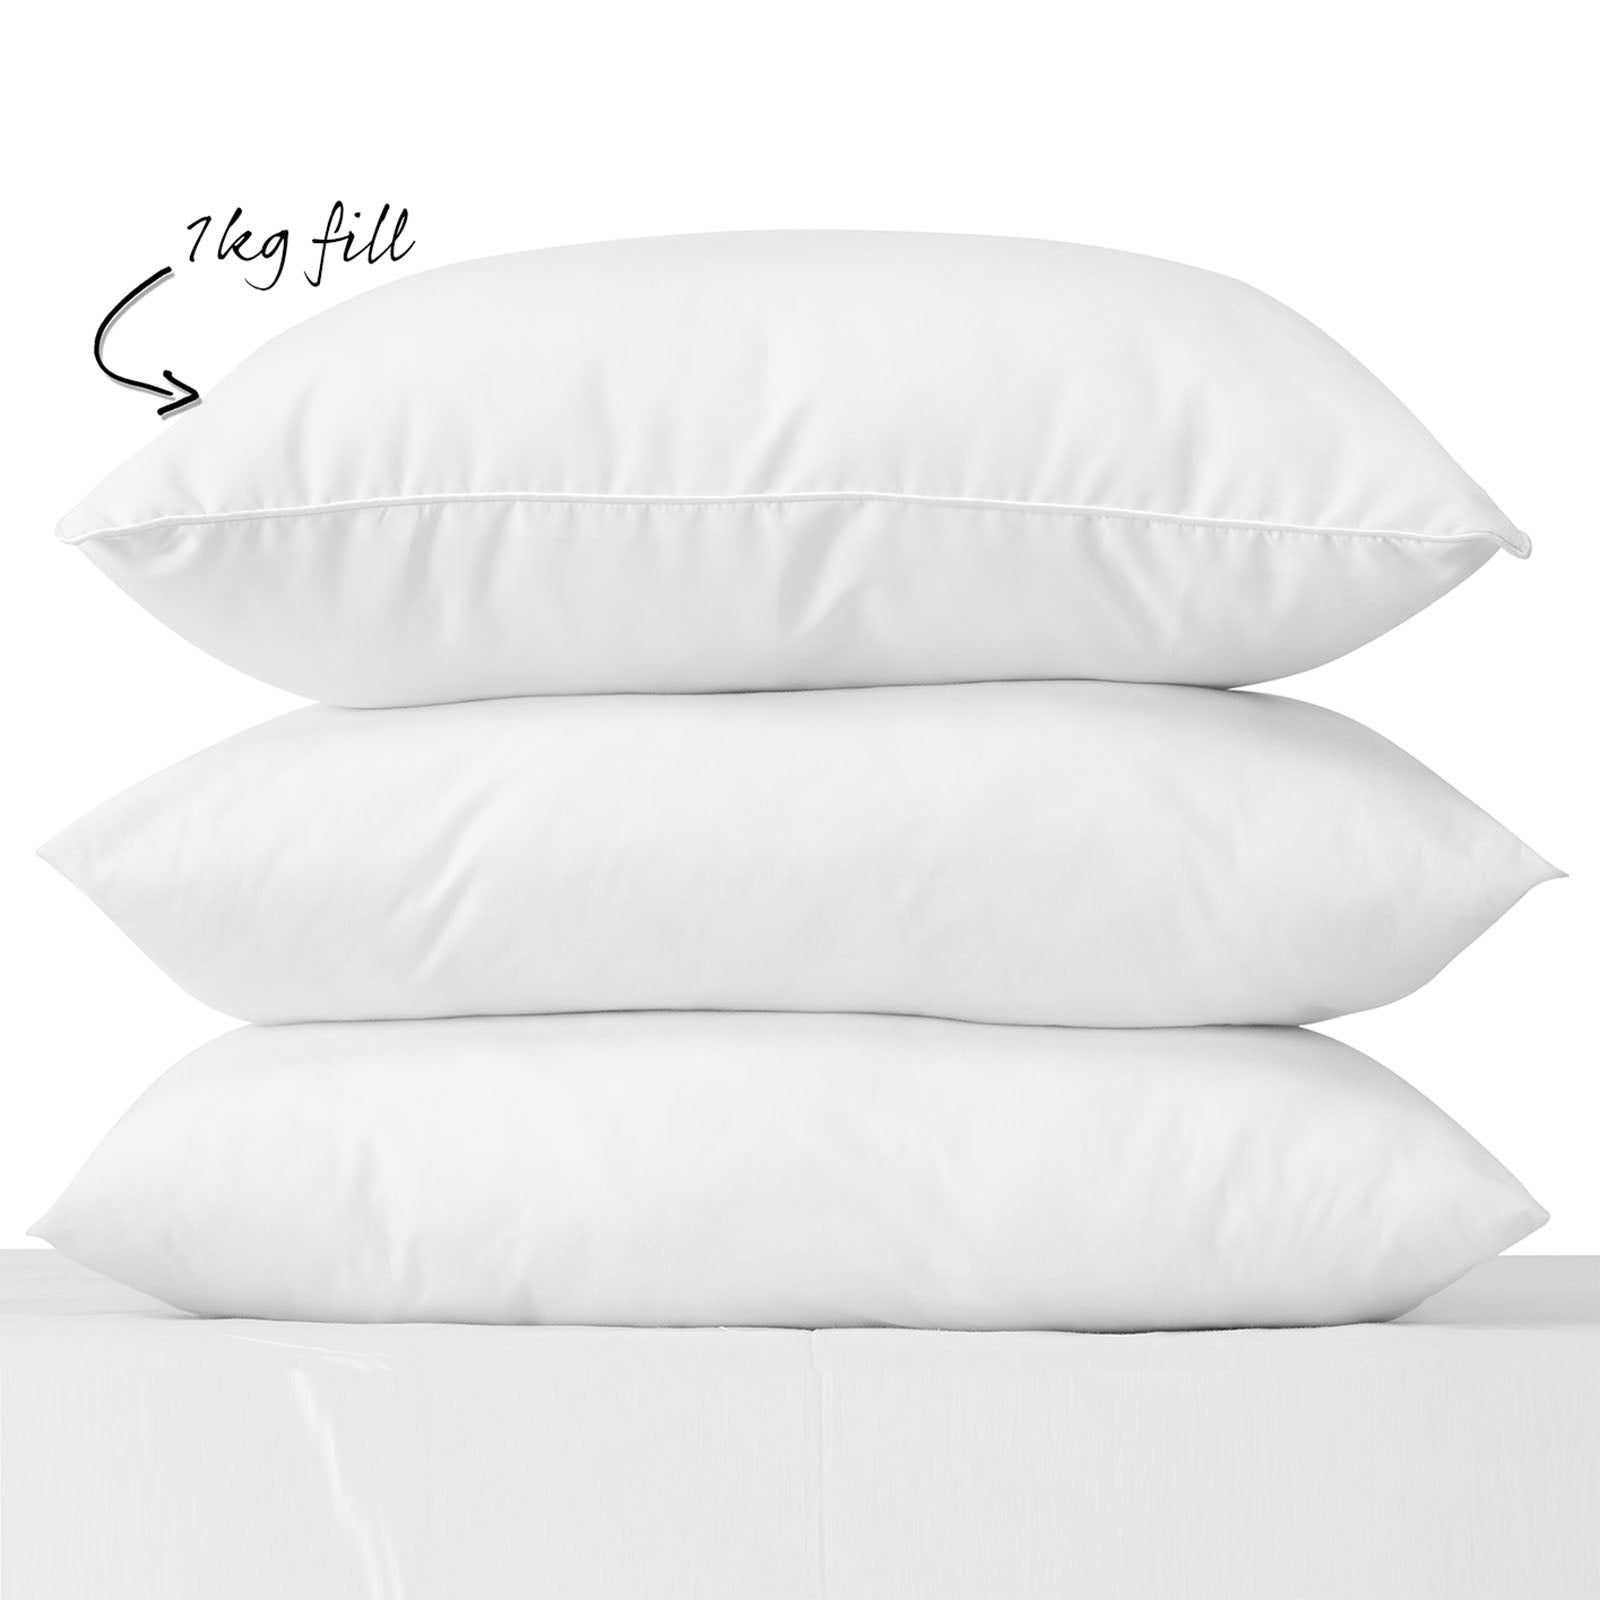 DELUXE DUCK FEATHER AND DOWN PILLOWS 100/% COTTON COVER BOX PILLOW PACK